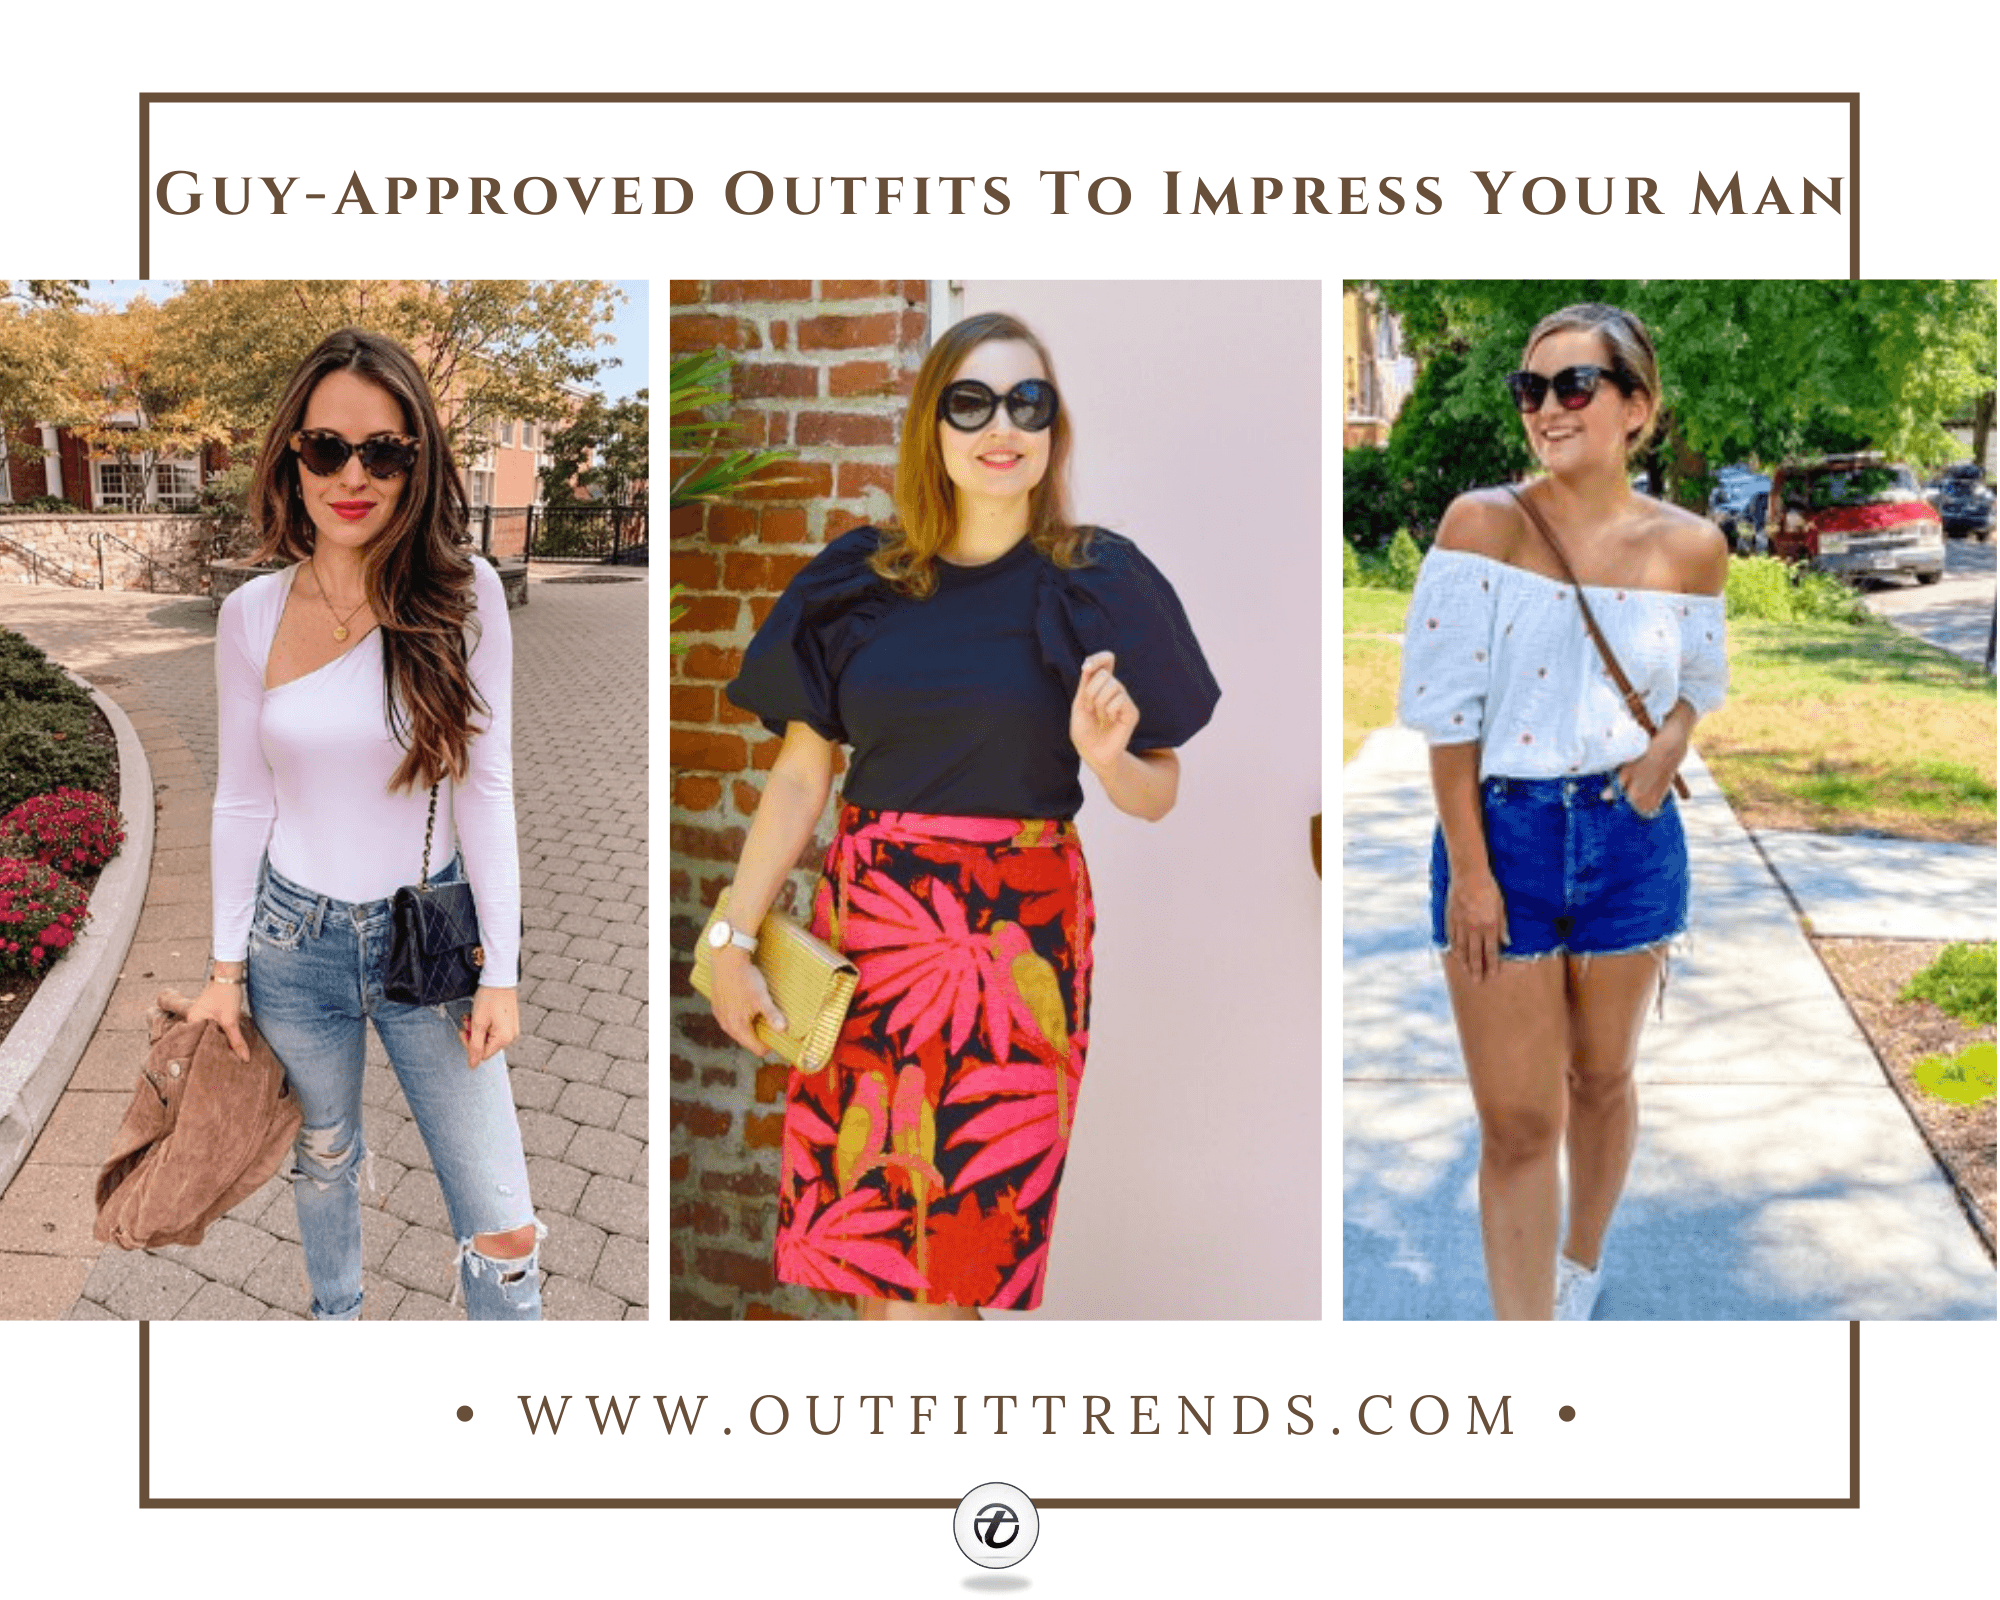 Outfits Men Love on Women 20 Outfits He Wants you to Wear